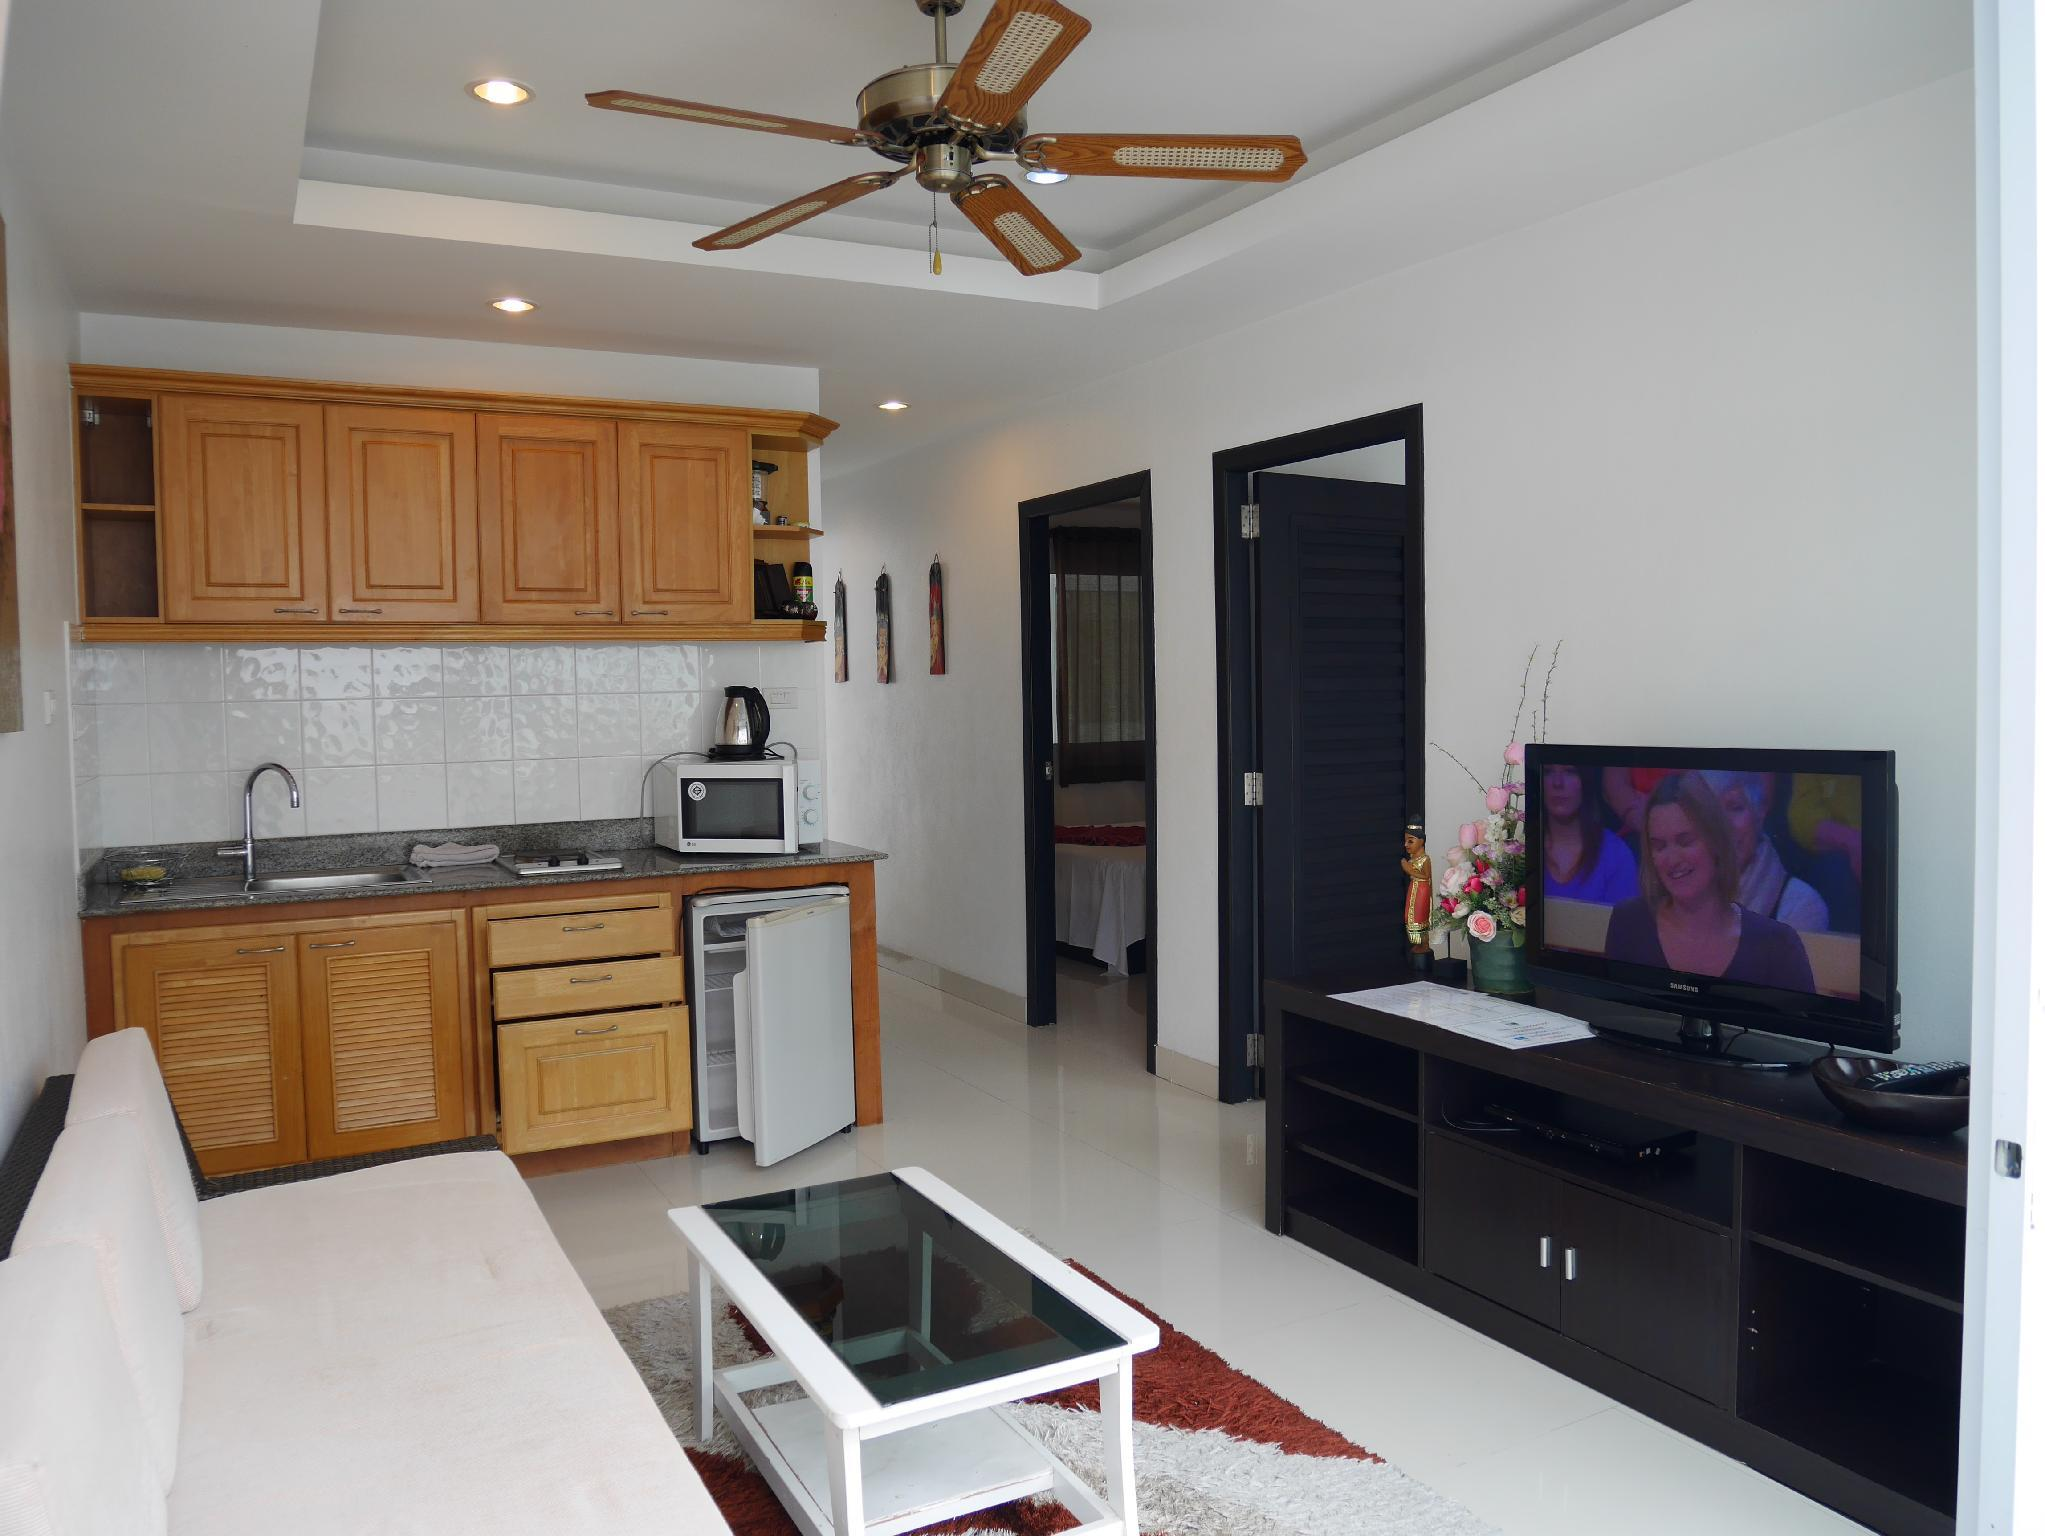 2 Bedrooms Families Private Apartment 1Fl.